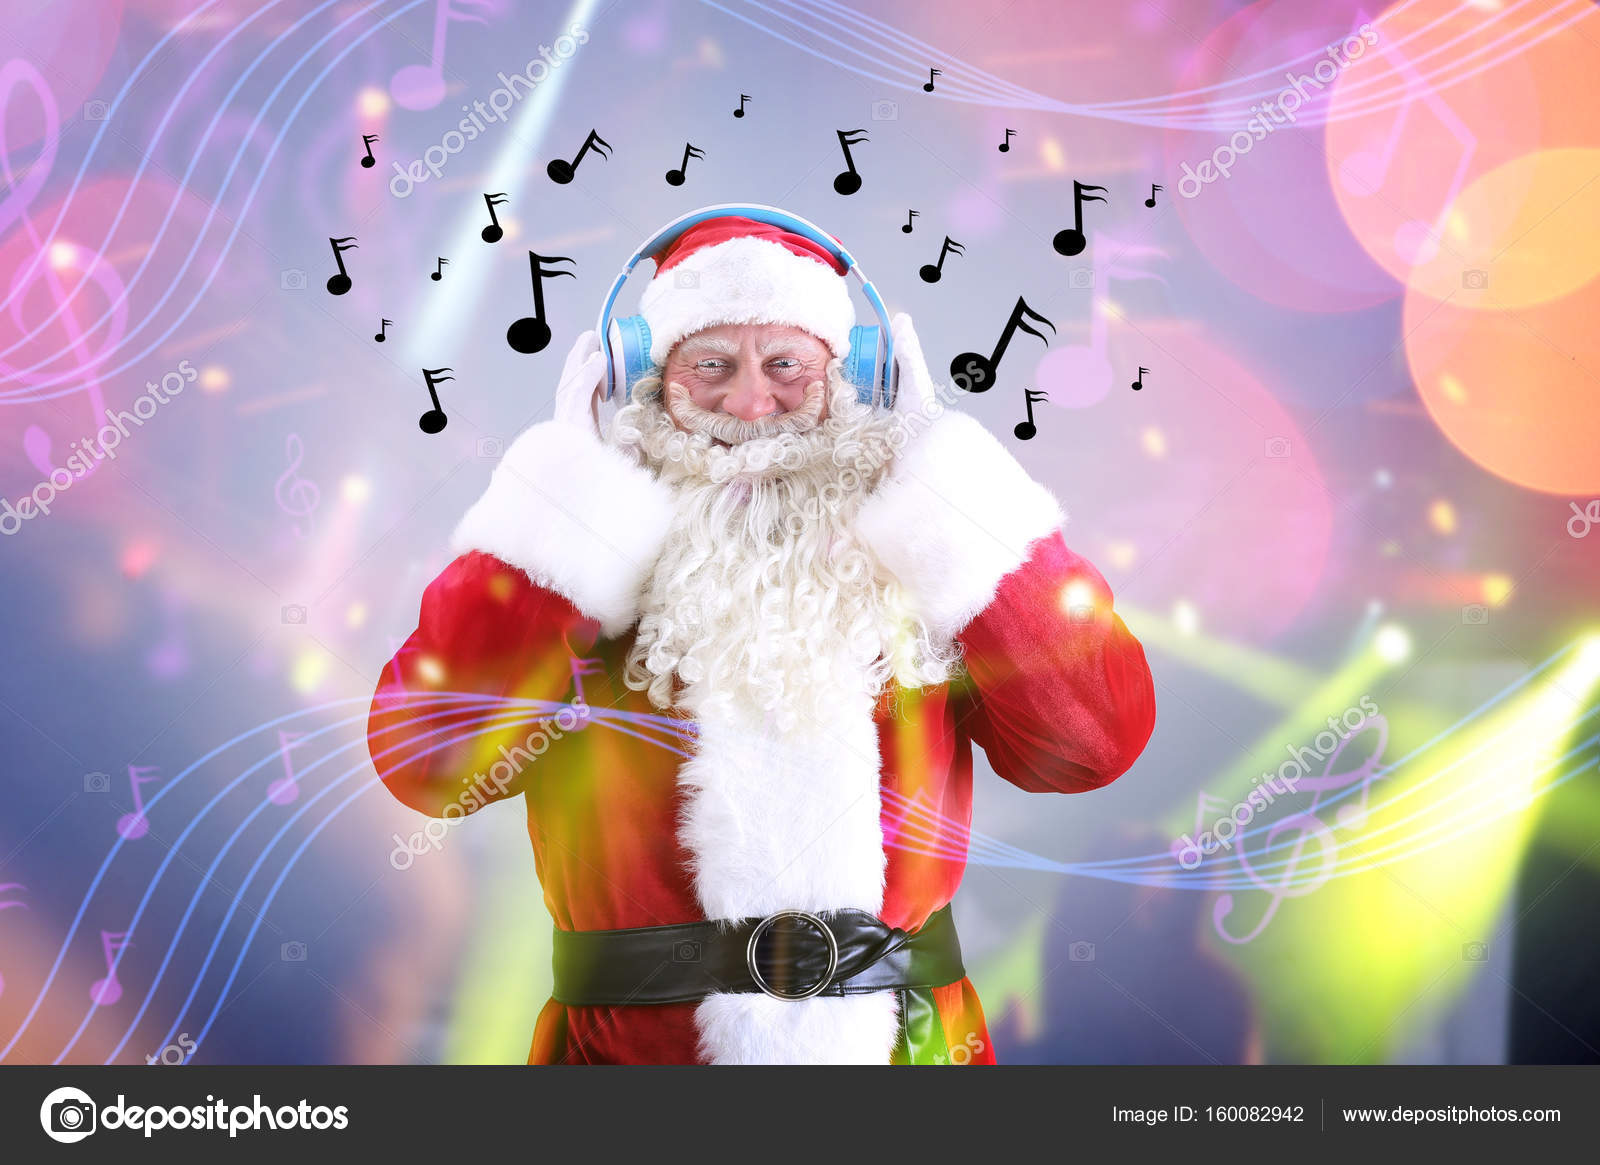 Santa Claus with headphones listening to music on blurred